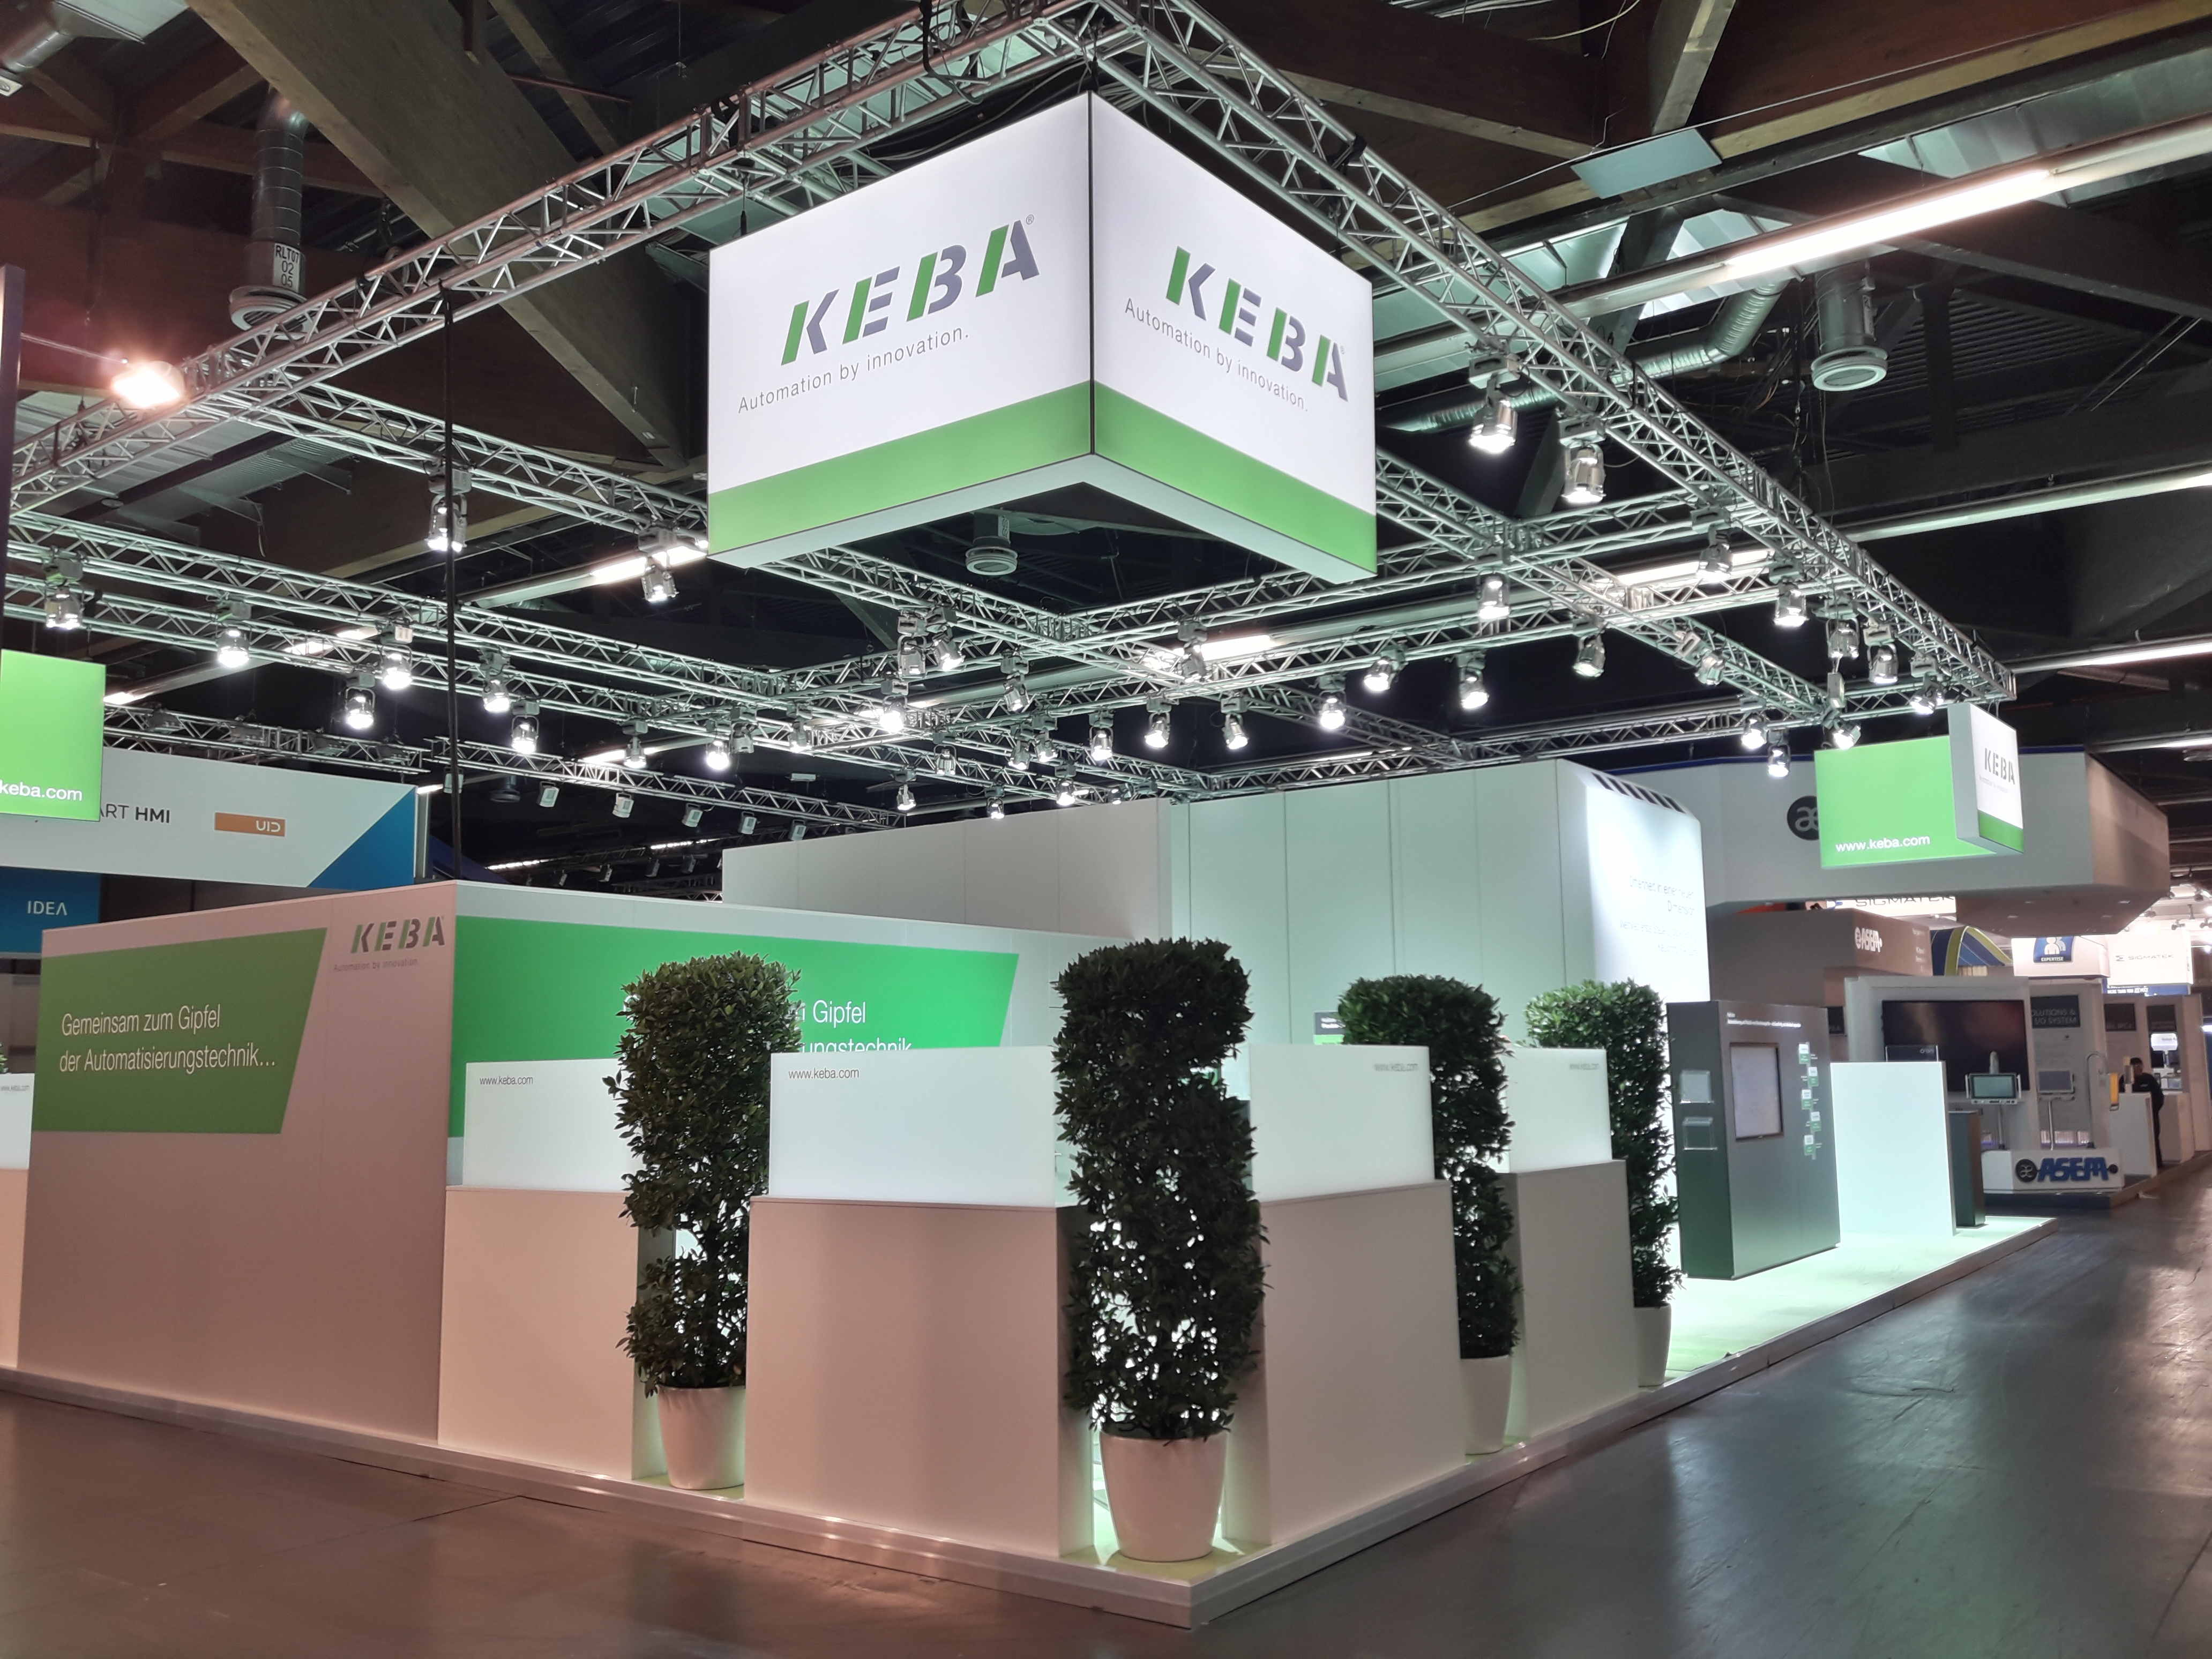 KEBA auf der SPS 2017 in Nürnberg, Messebau by KOOP Live Marketing Messen in Graz, Wien, Steyregg/Linz